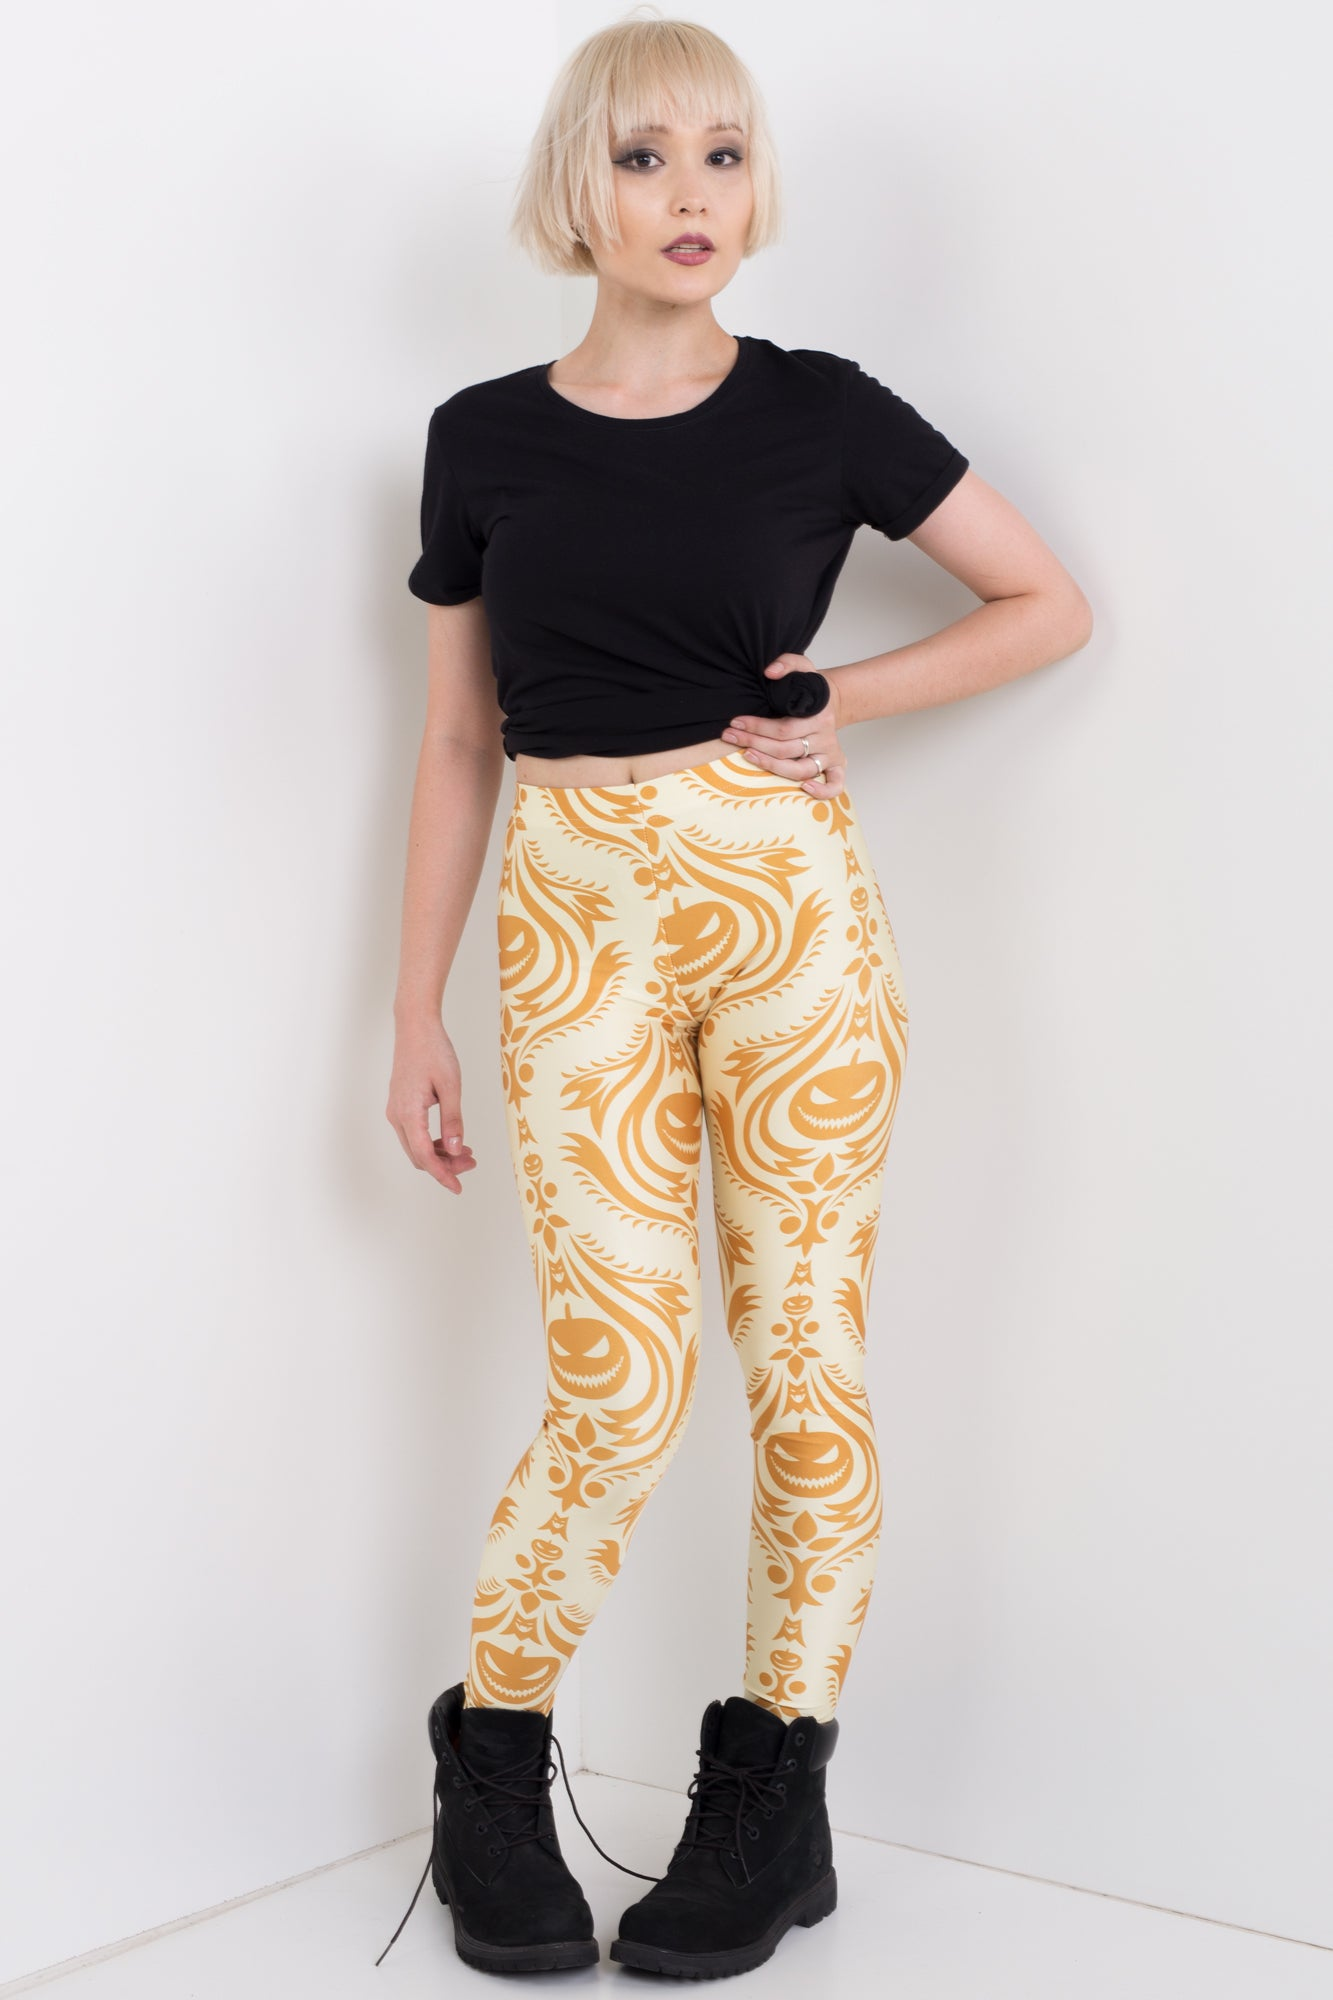 Pumpkin Head Leggings